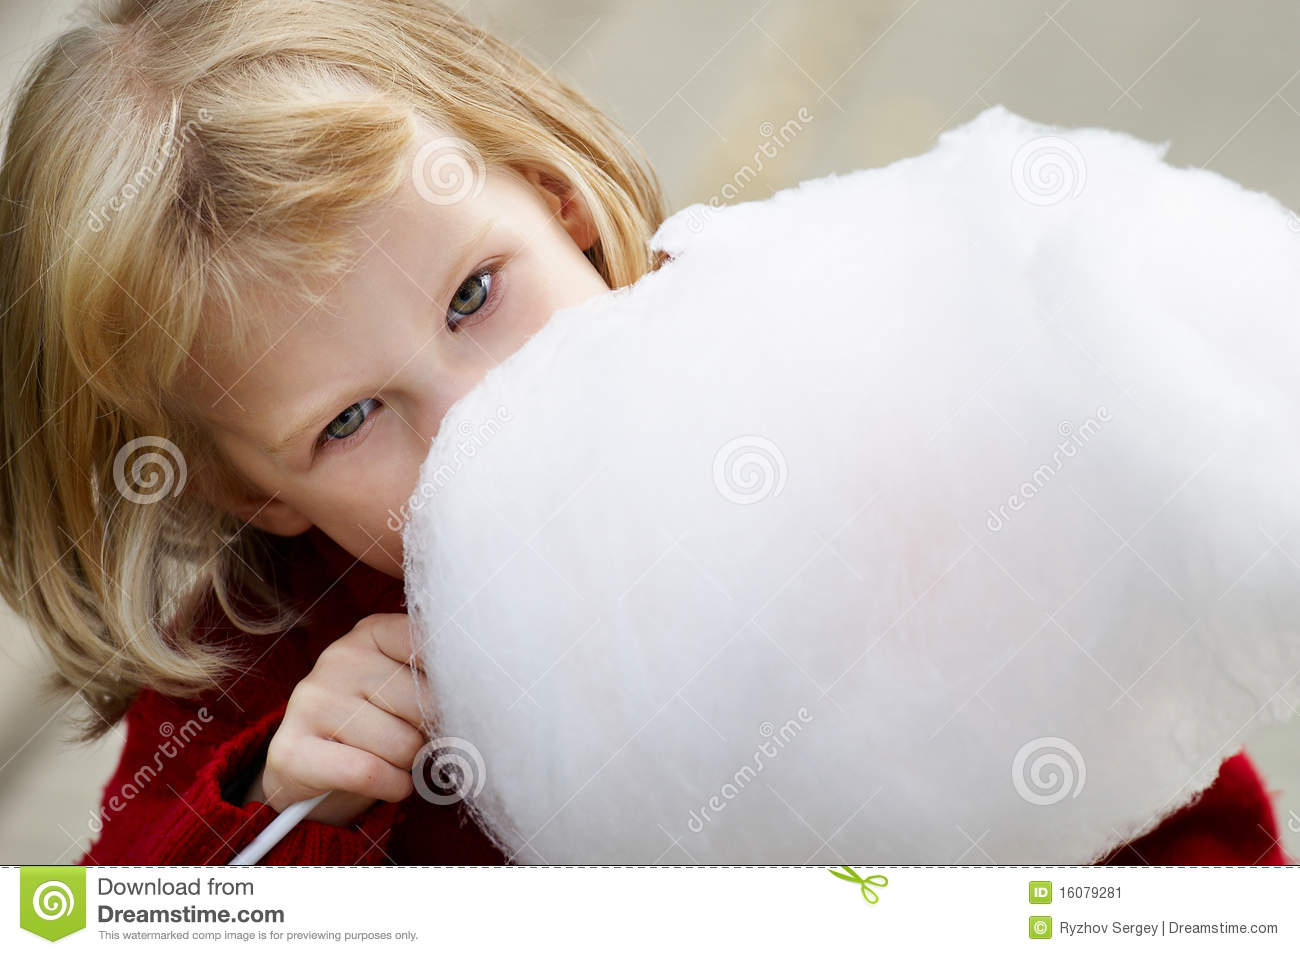 Little Girl Eating Cotton Candy Stock Image   Image  16079281